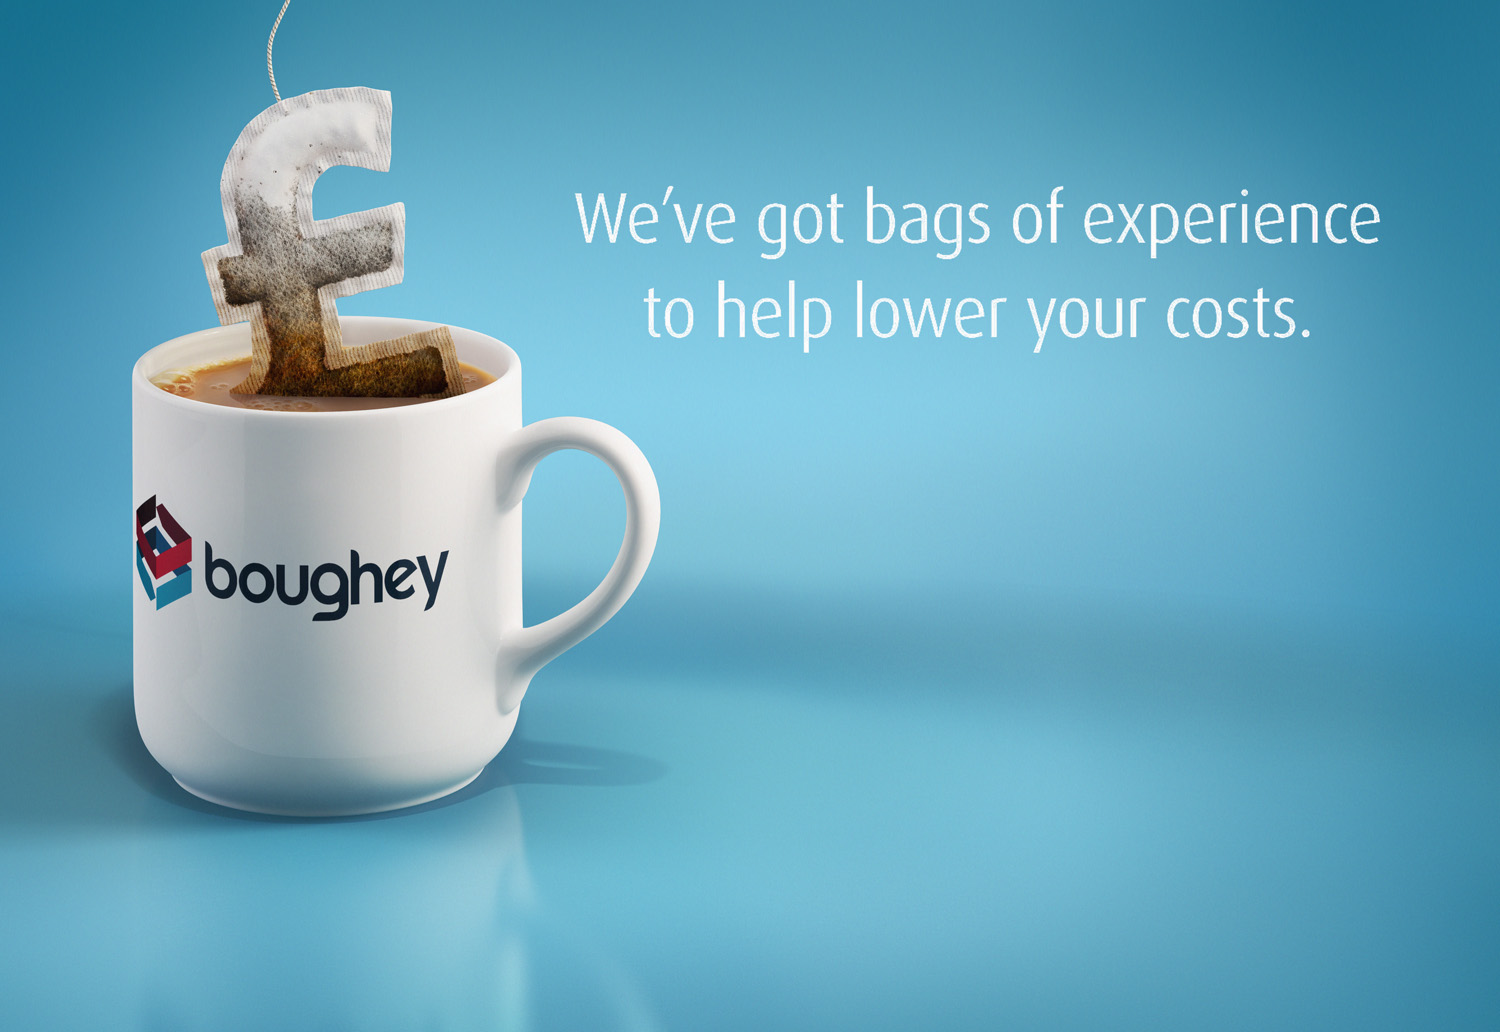 British_Pound_Tea-Bag_Boughey